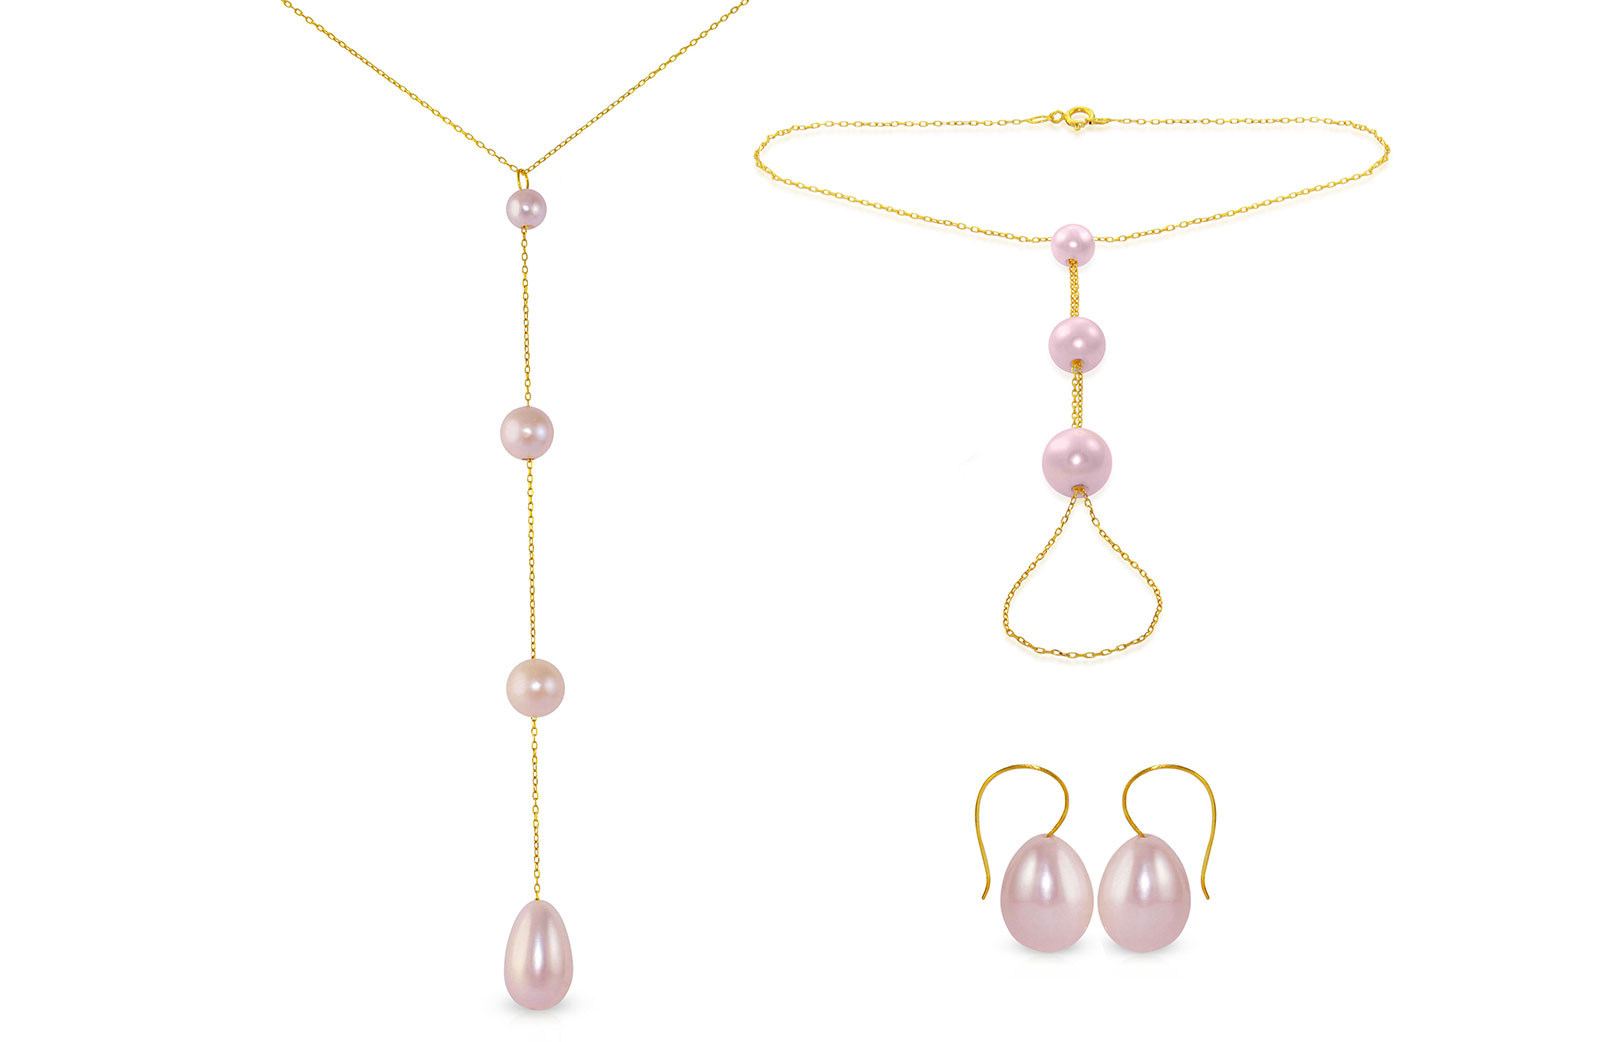 Vera Perla 10K Gold Gradual Built-in with Purple Drop Pearl Jewelry Set, 3 Pcs